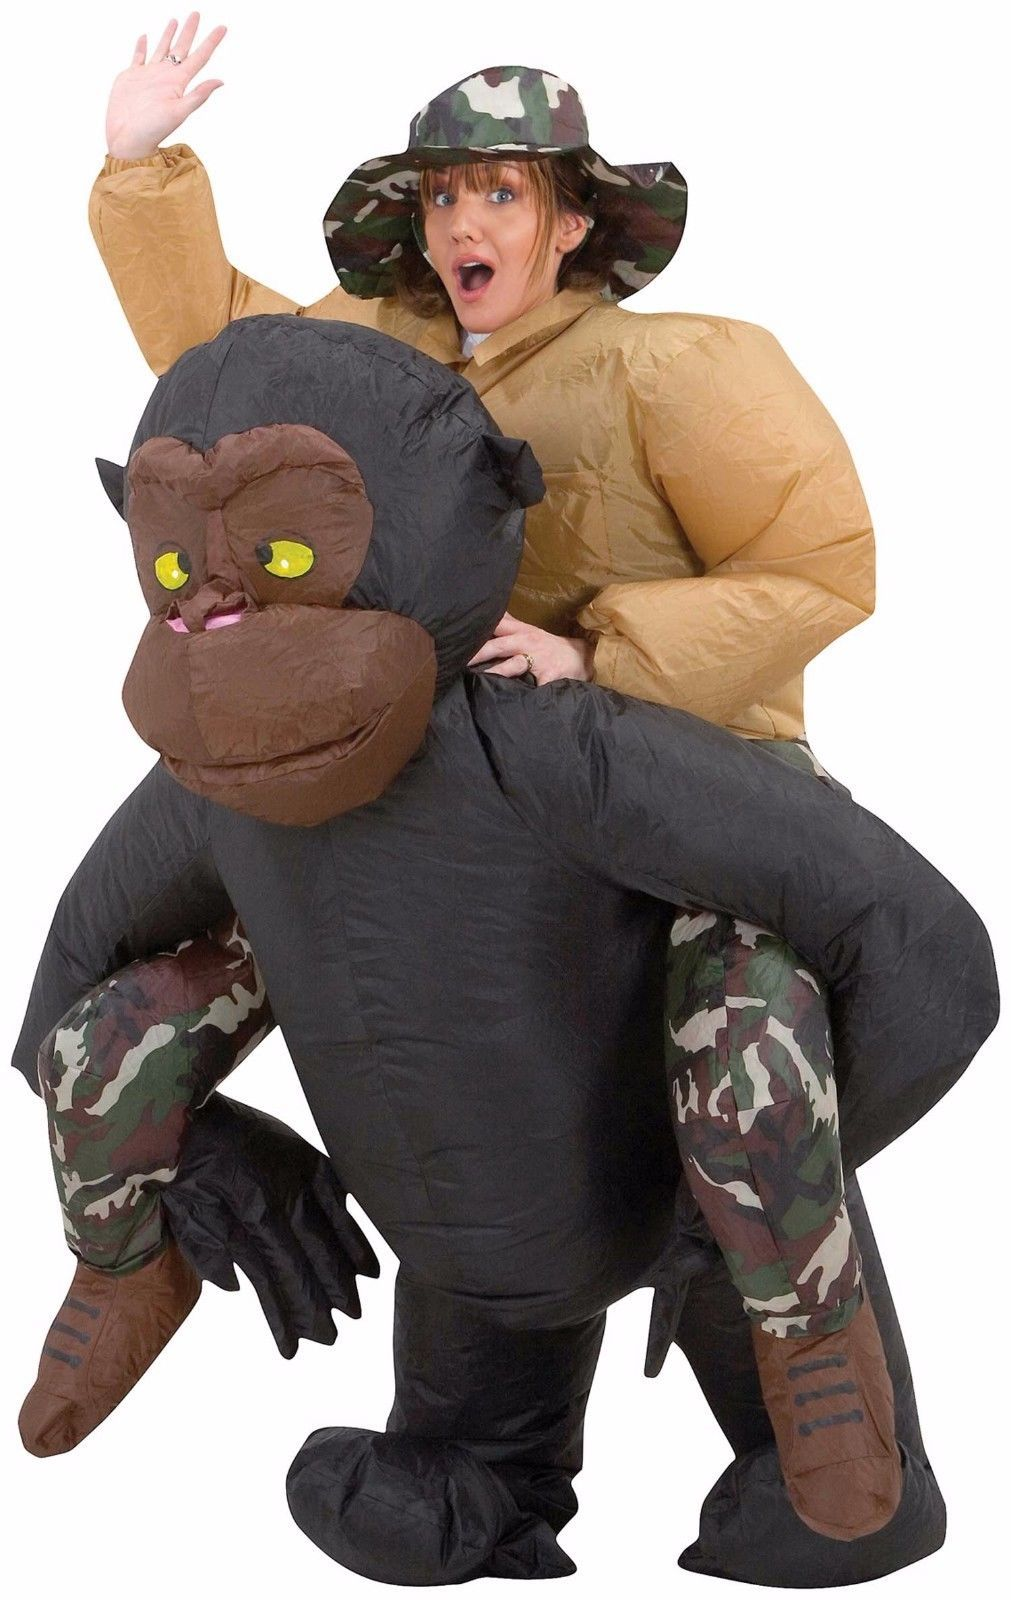 New Funny Ape Rider RIDING GORILLA INFLATABLE INSTANT COSTUME Airblown Gag-Adult